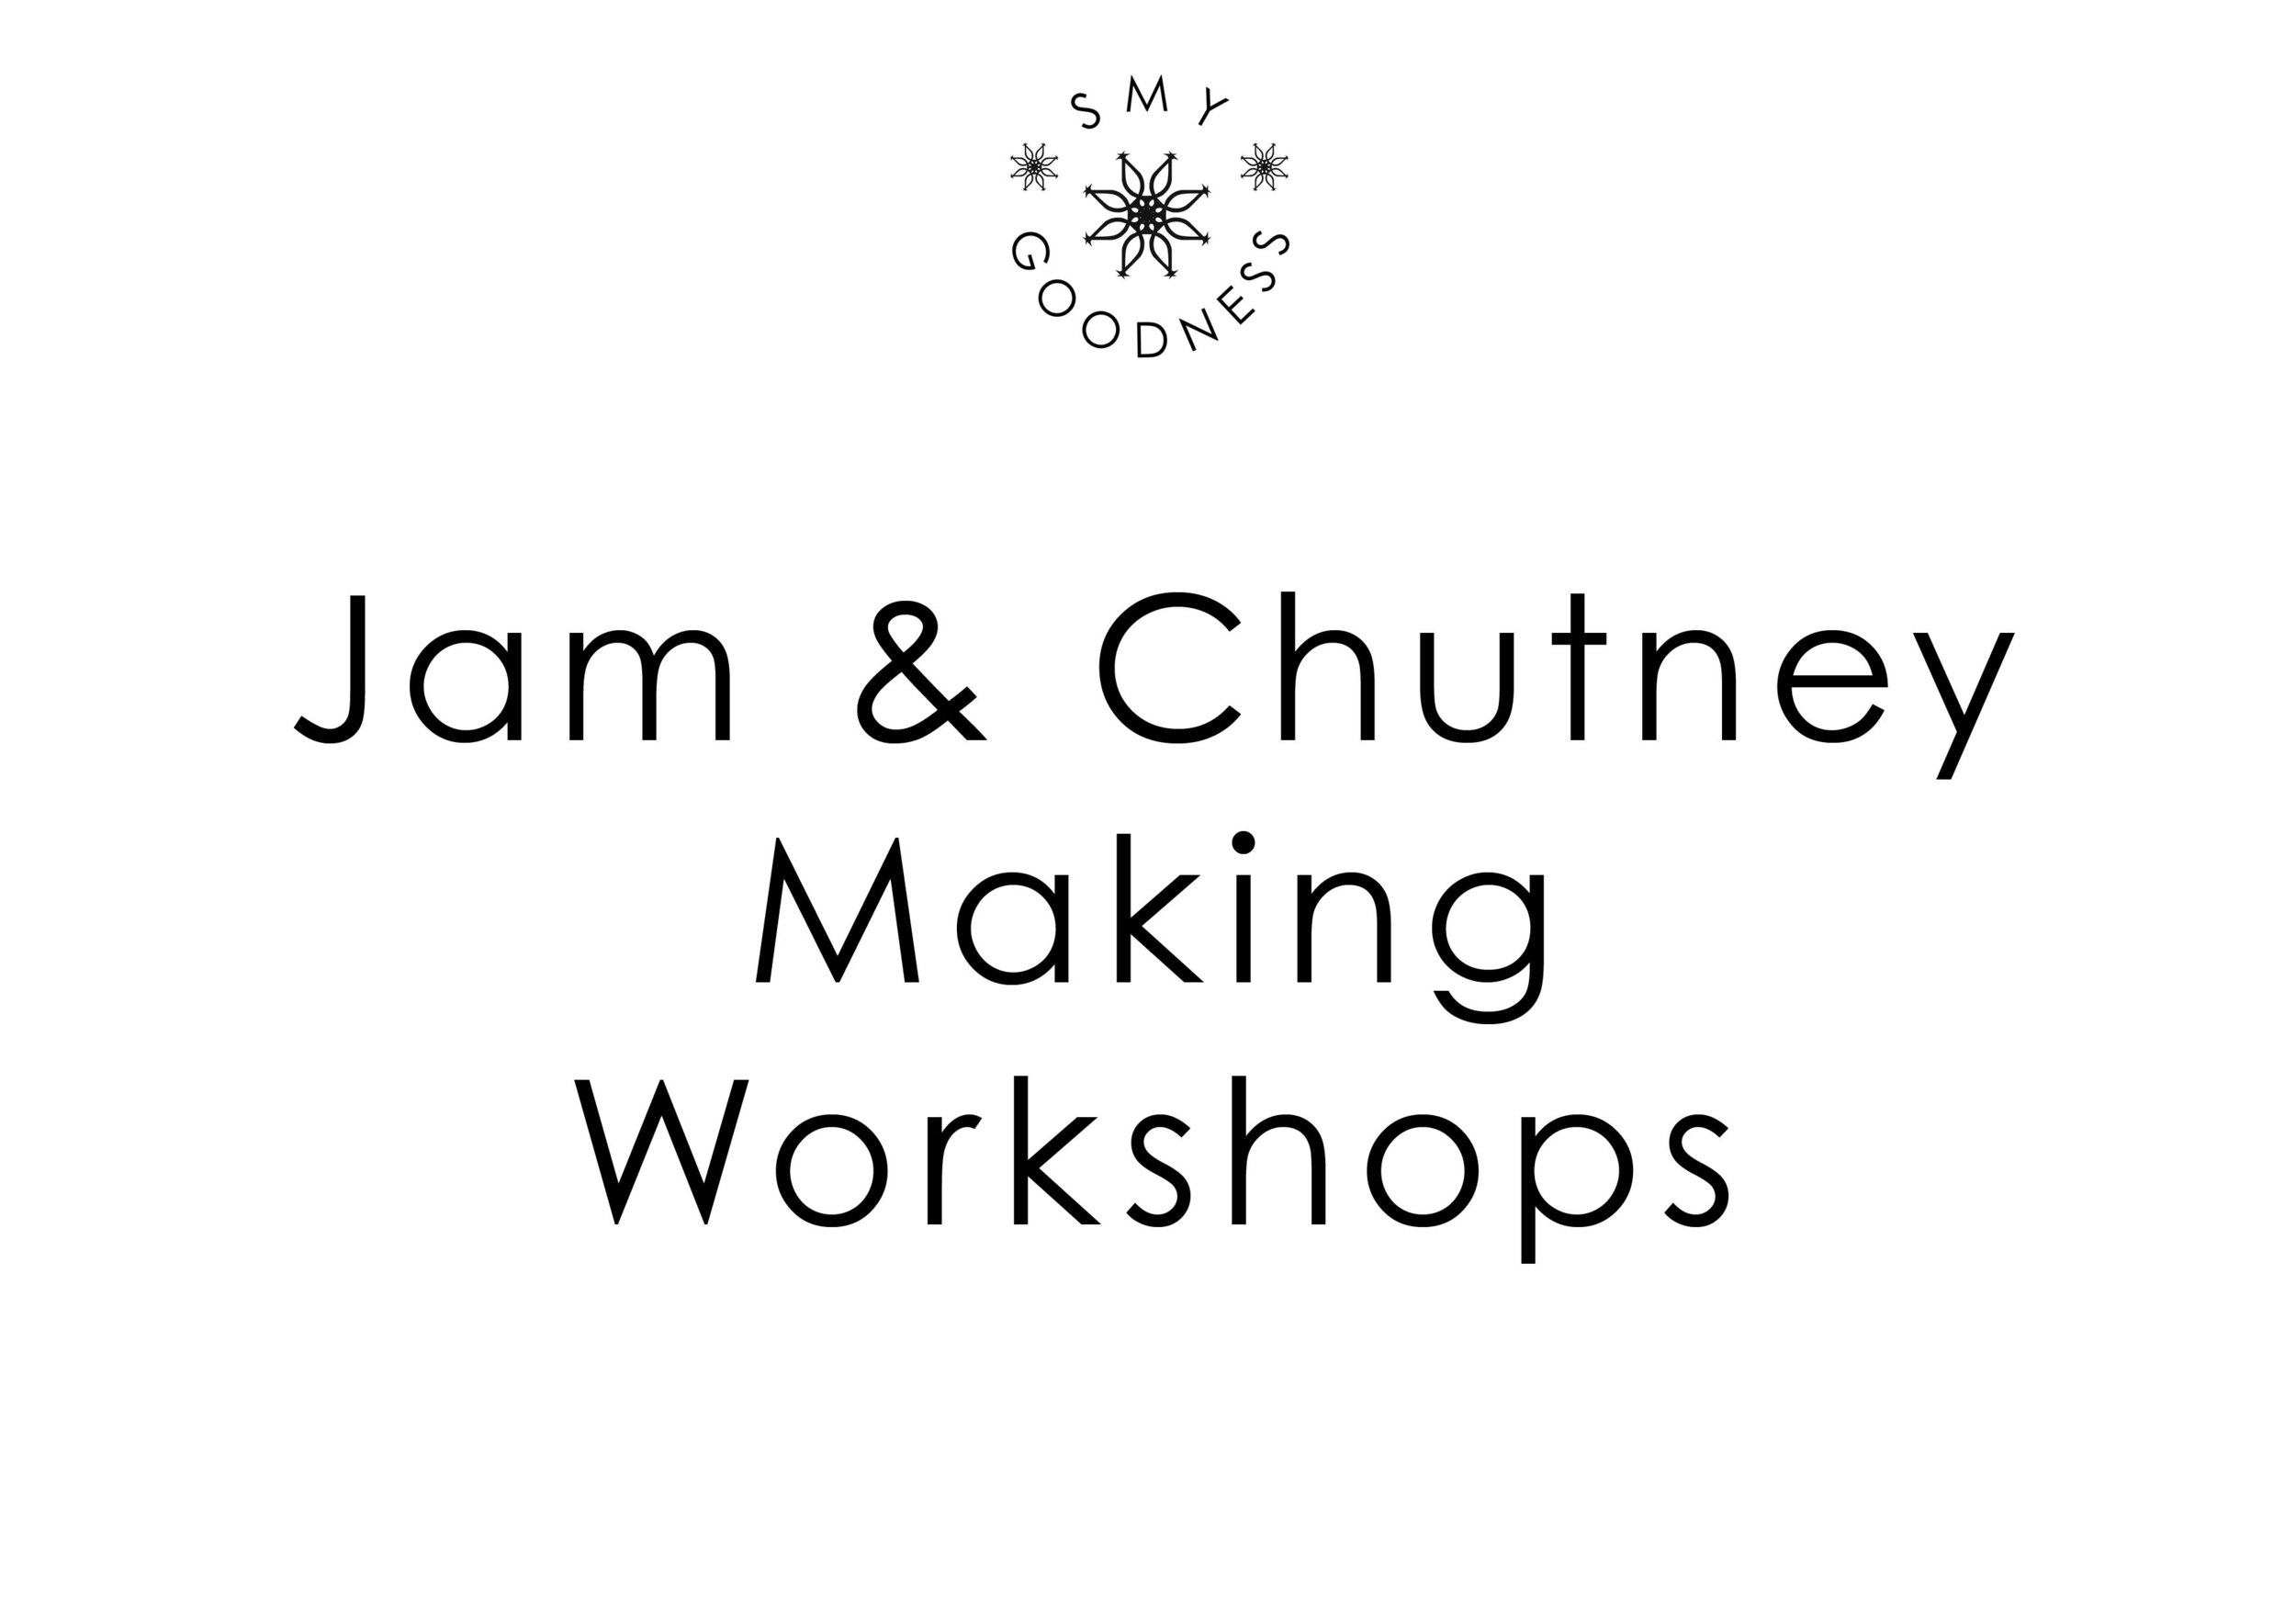 Jam & Chutney Making Workshops